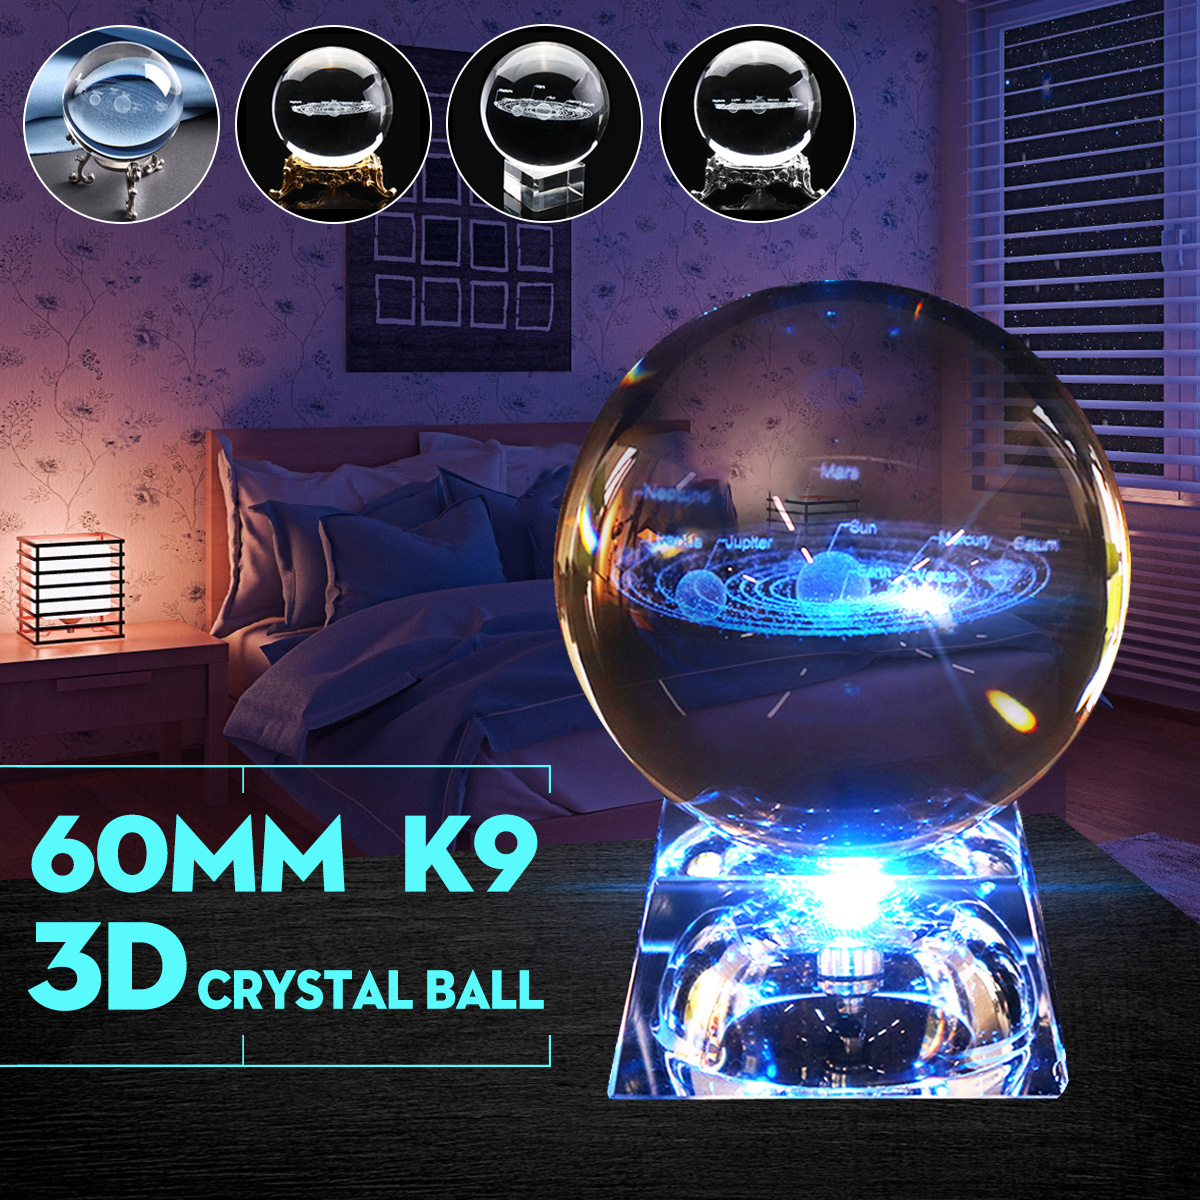 60MM Diameter 3D Crystal Ball Solar system Model  Home Decoration Accessories Gift 3D Laser Engraved Quartz Glass Ball60MM Diameter 3D Crystal Ball Solar system Model  Home Decoration Accessories Gift 3D Laser Engraved Quartz Glass Ball